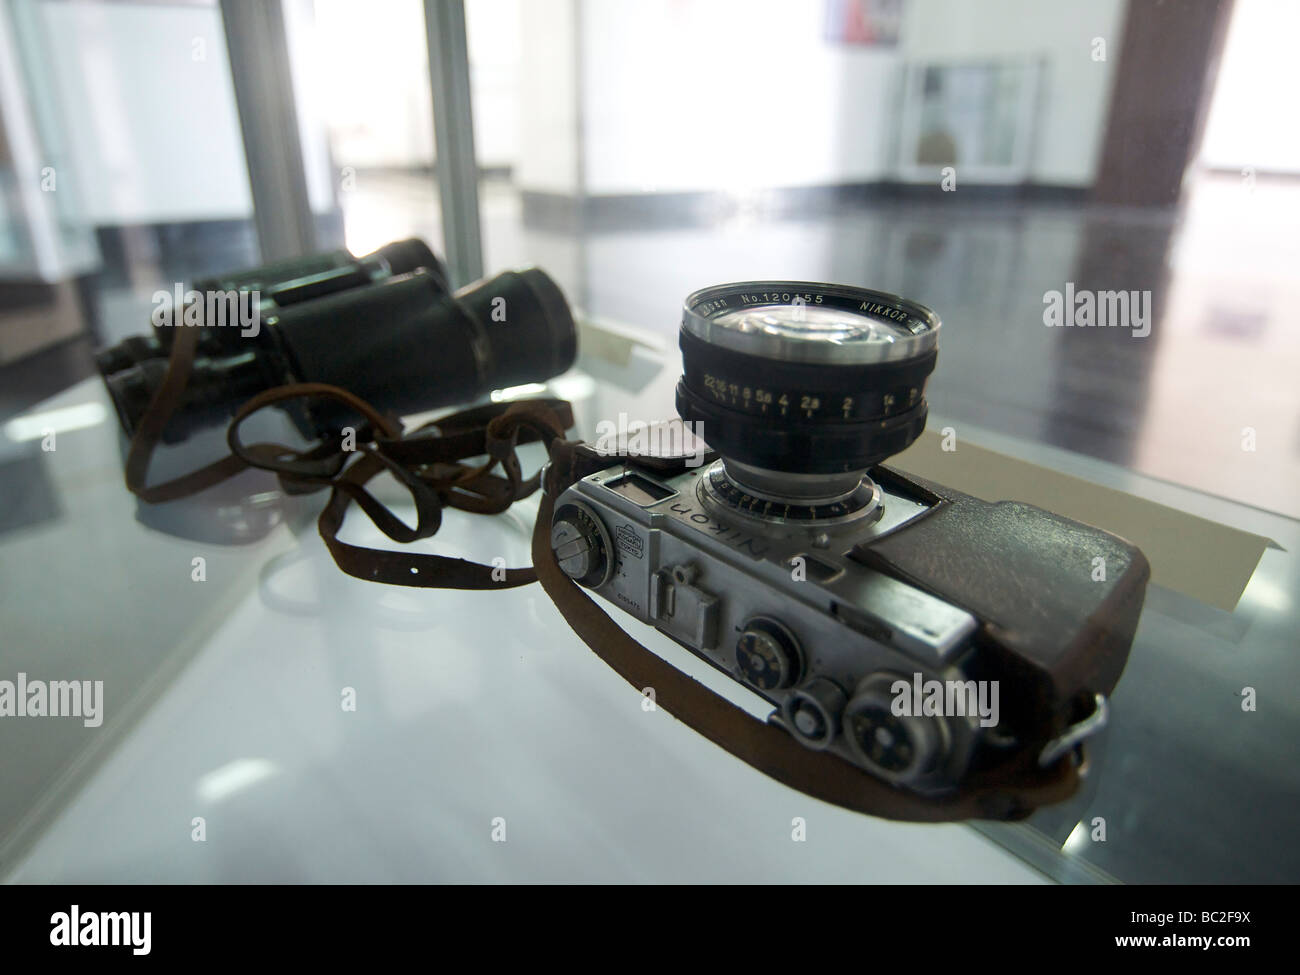 The actual binoculars and Nikon rangefinder camera used by Che Guevara. The Nikkor lens has a maximum aperture of Stock Photo